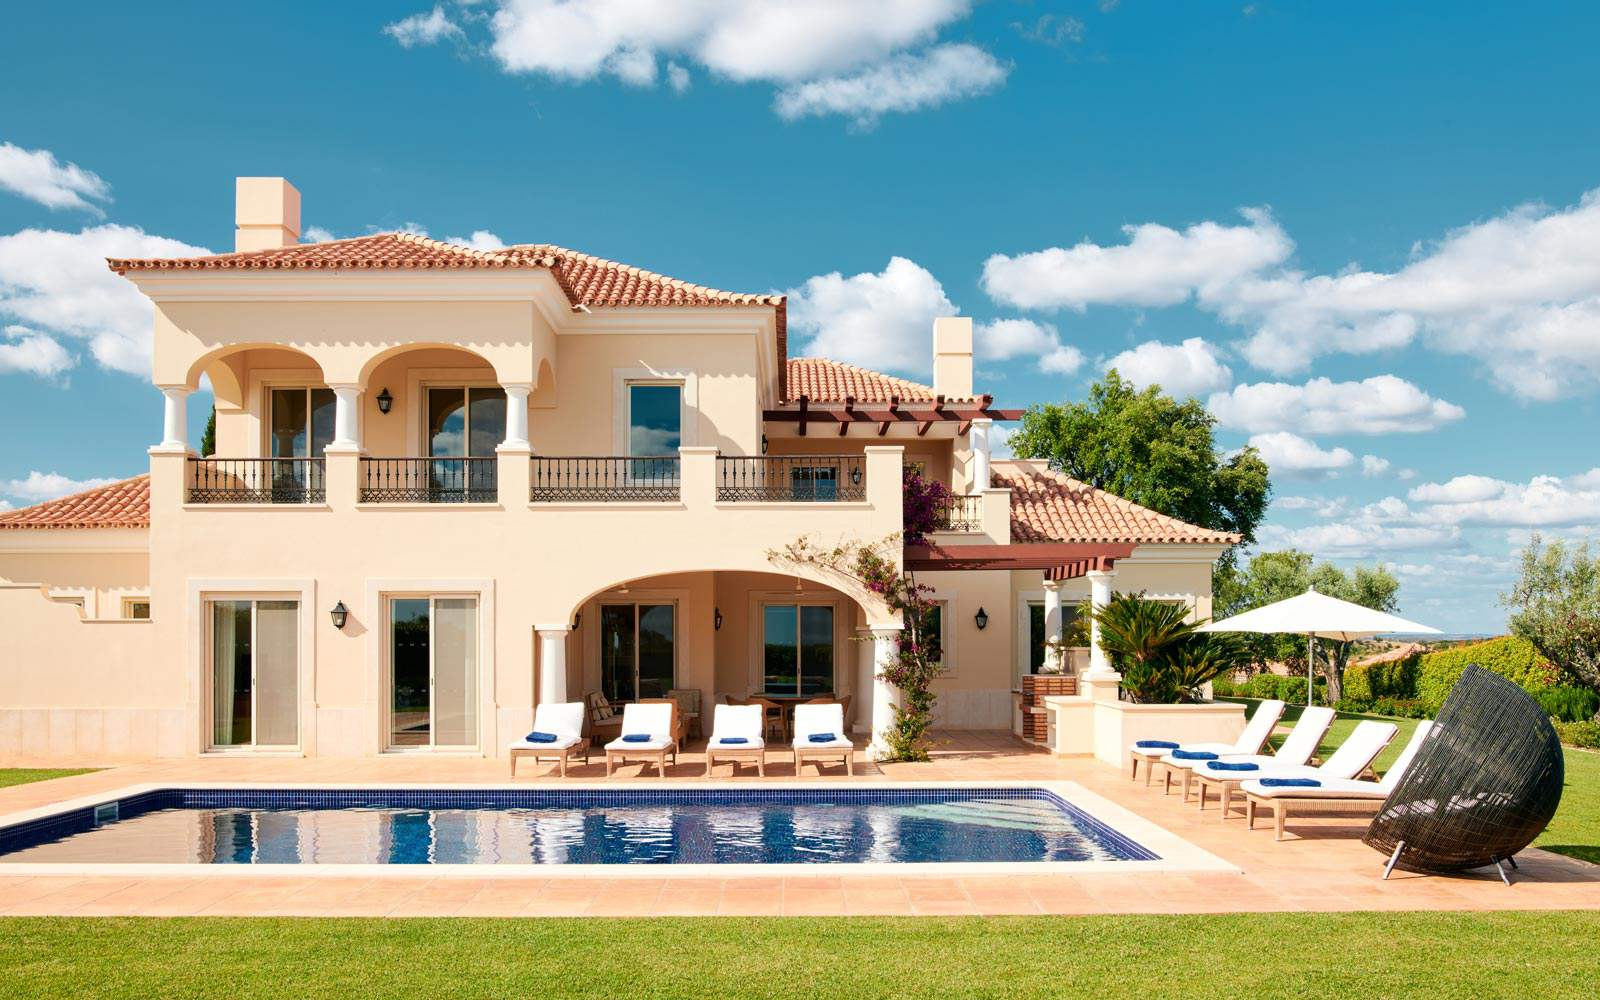 Monte Rei 4 bedroom villa with private pool